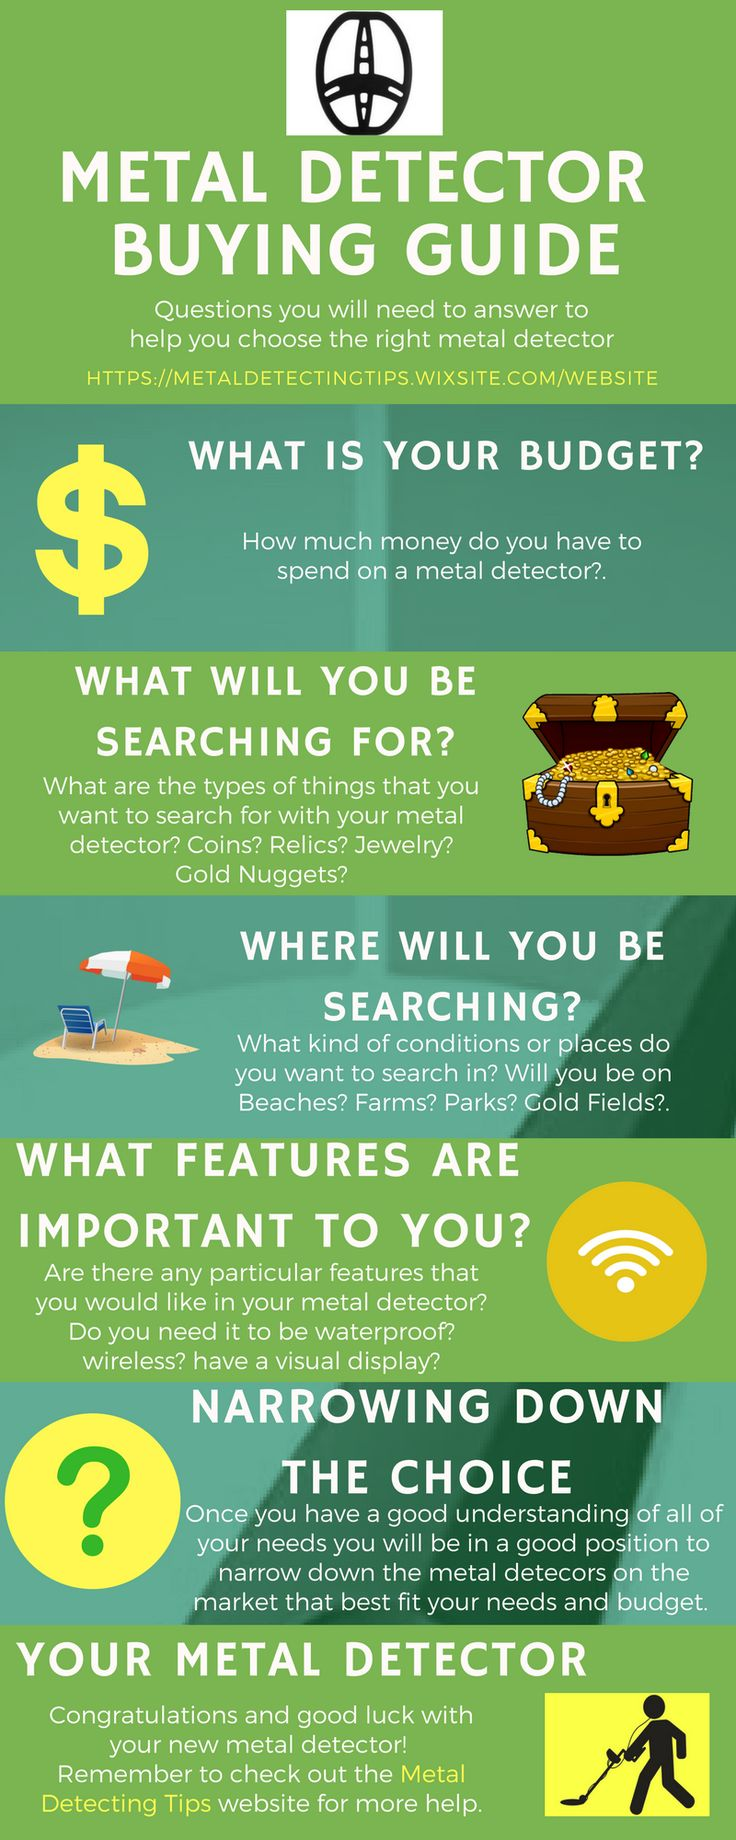 Metal Detector Buying Guide We have put this very simple Metal Detector buying guide together to help you learn about metal detectors.